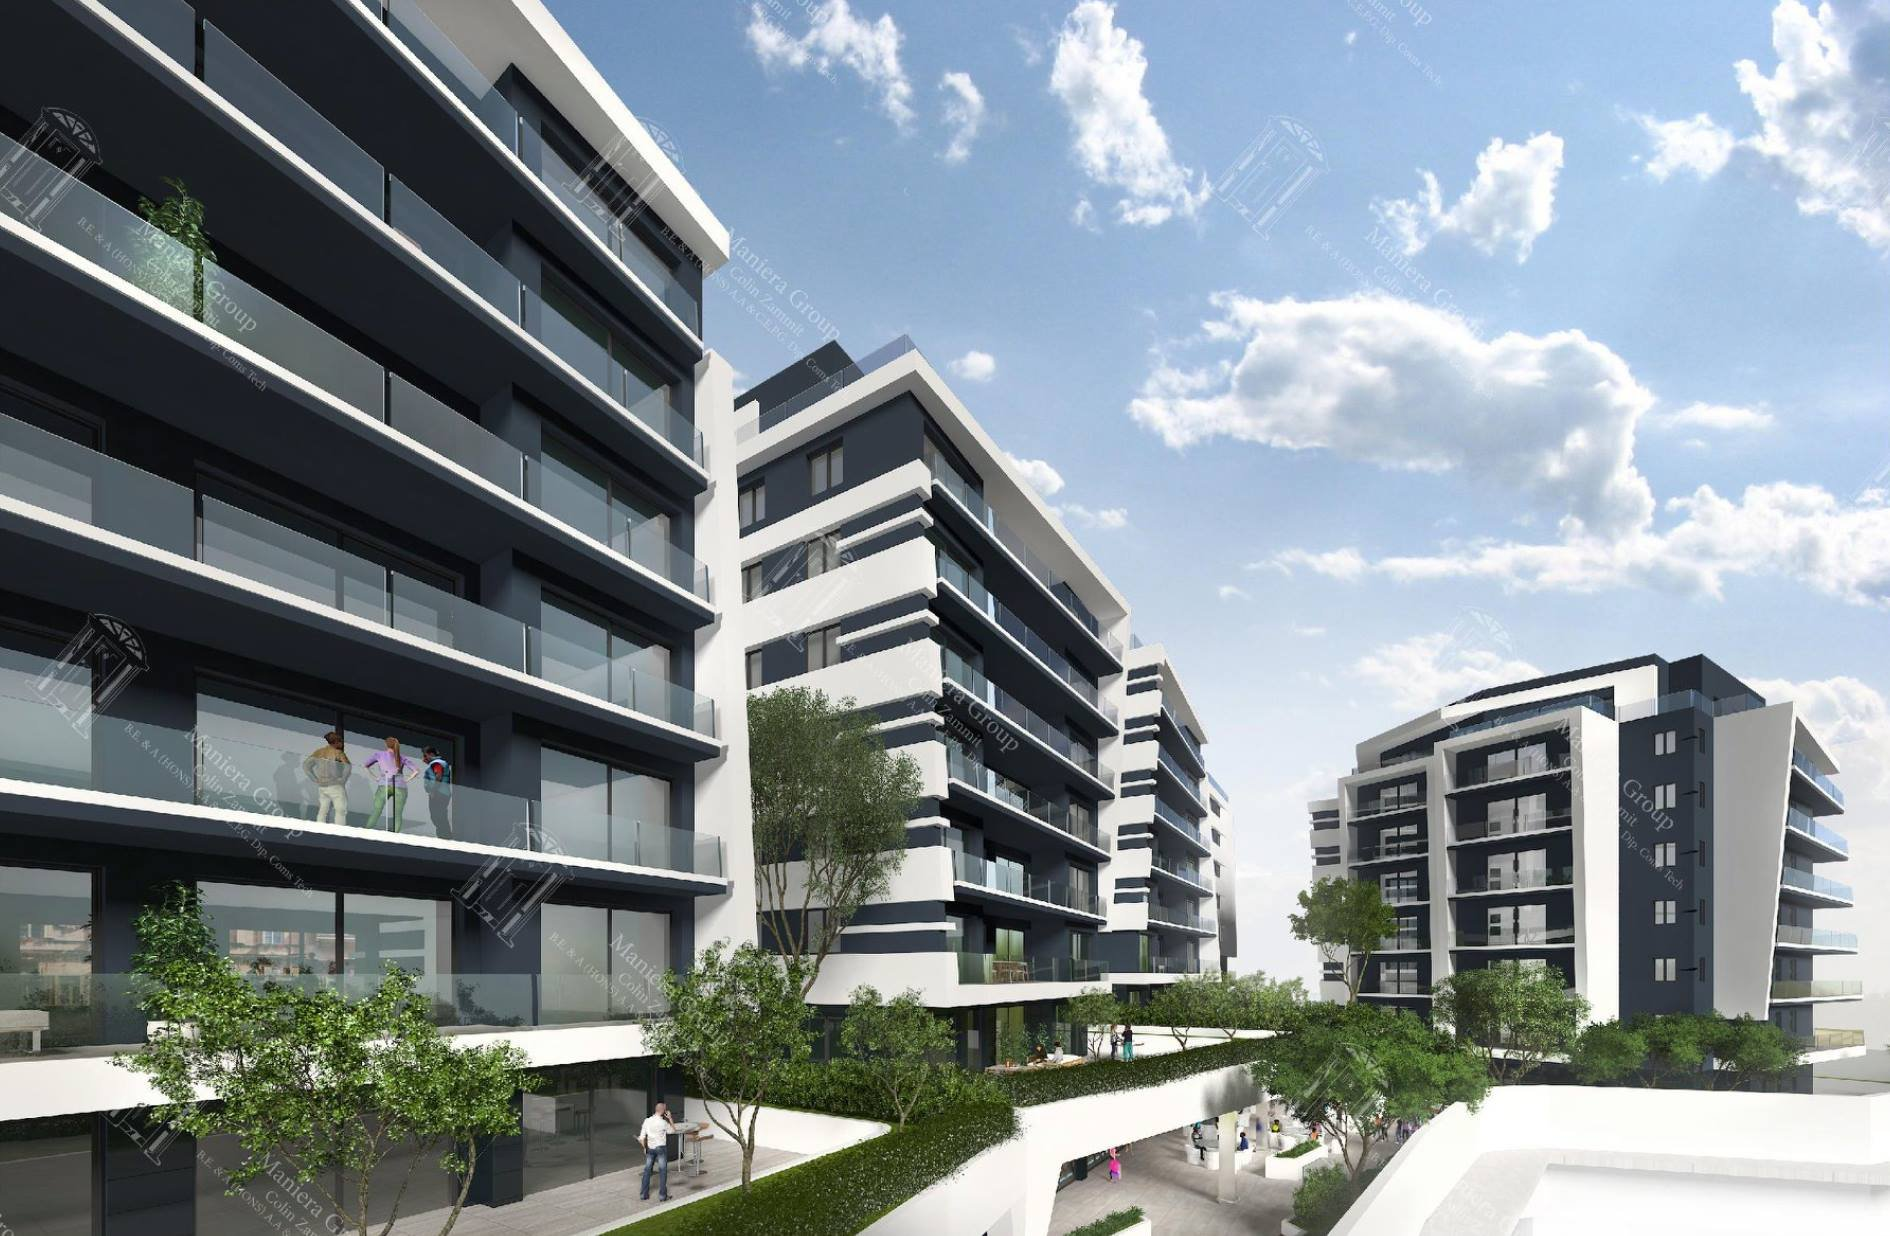 Property Malta: New development